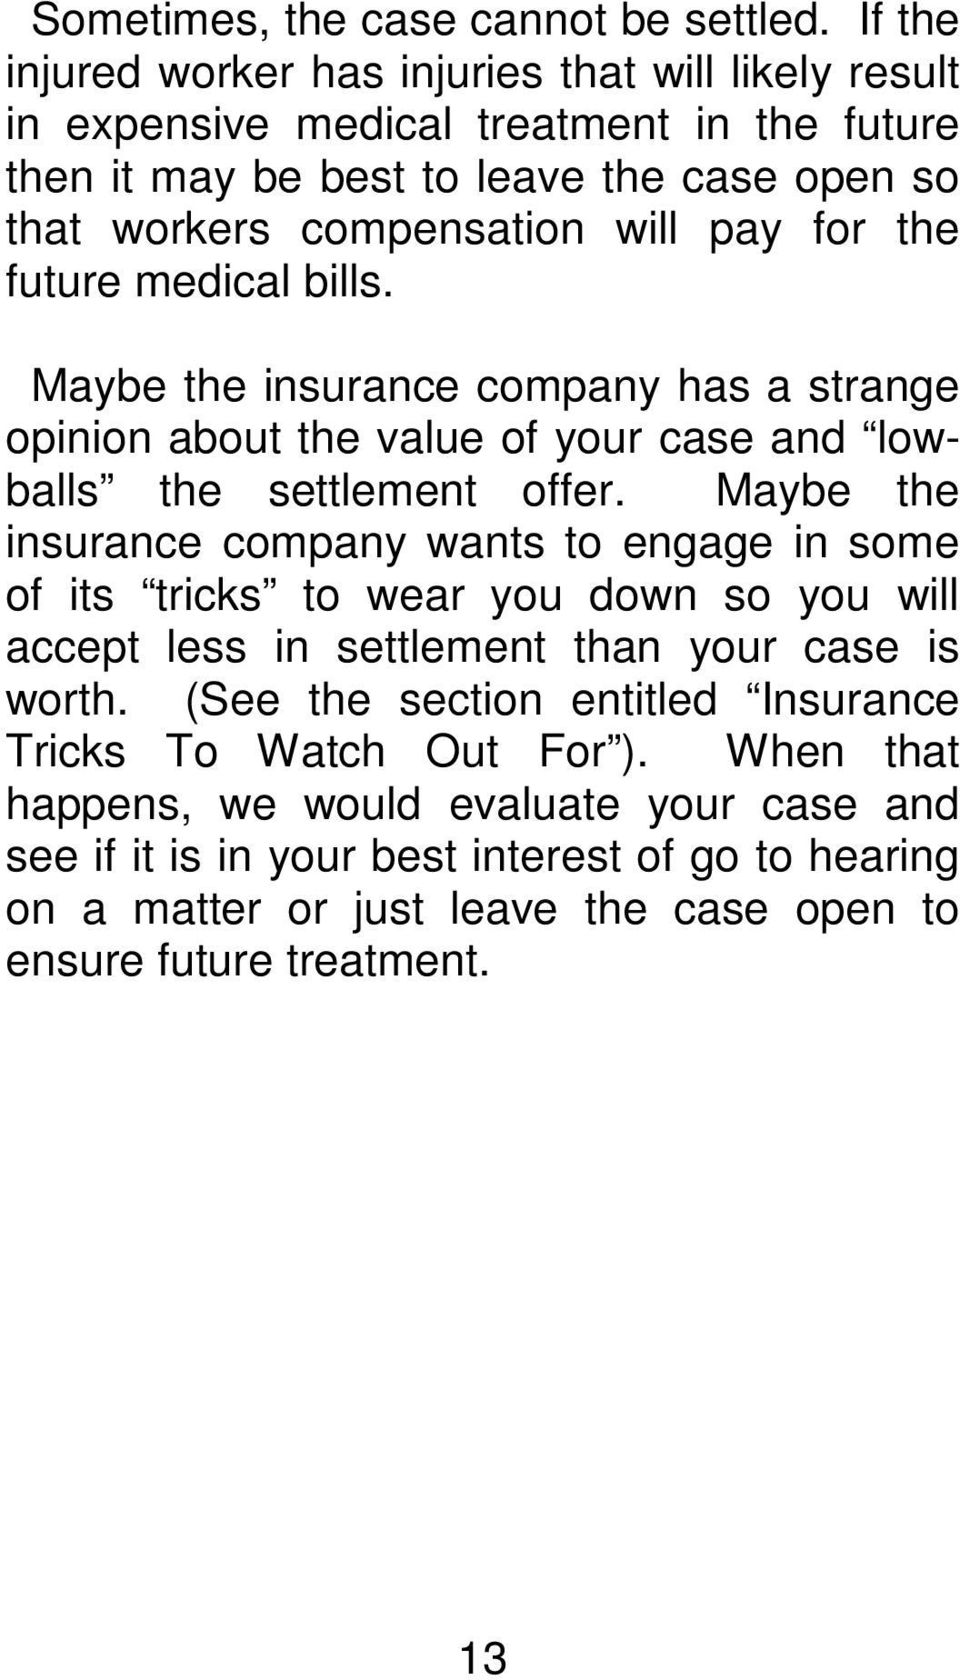 for the future medical bills. Maybe the insurance company has a strange opinion about the value of your case and lowballs the settlement offer.